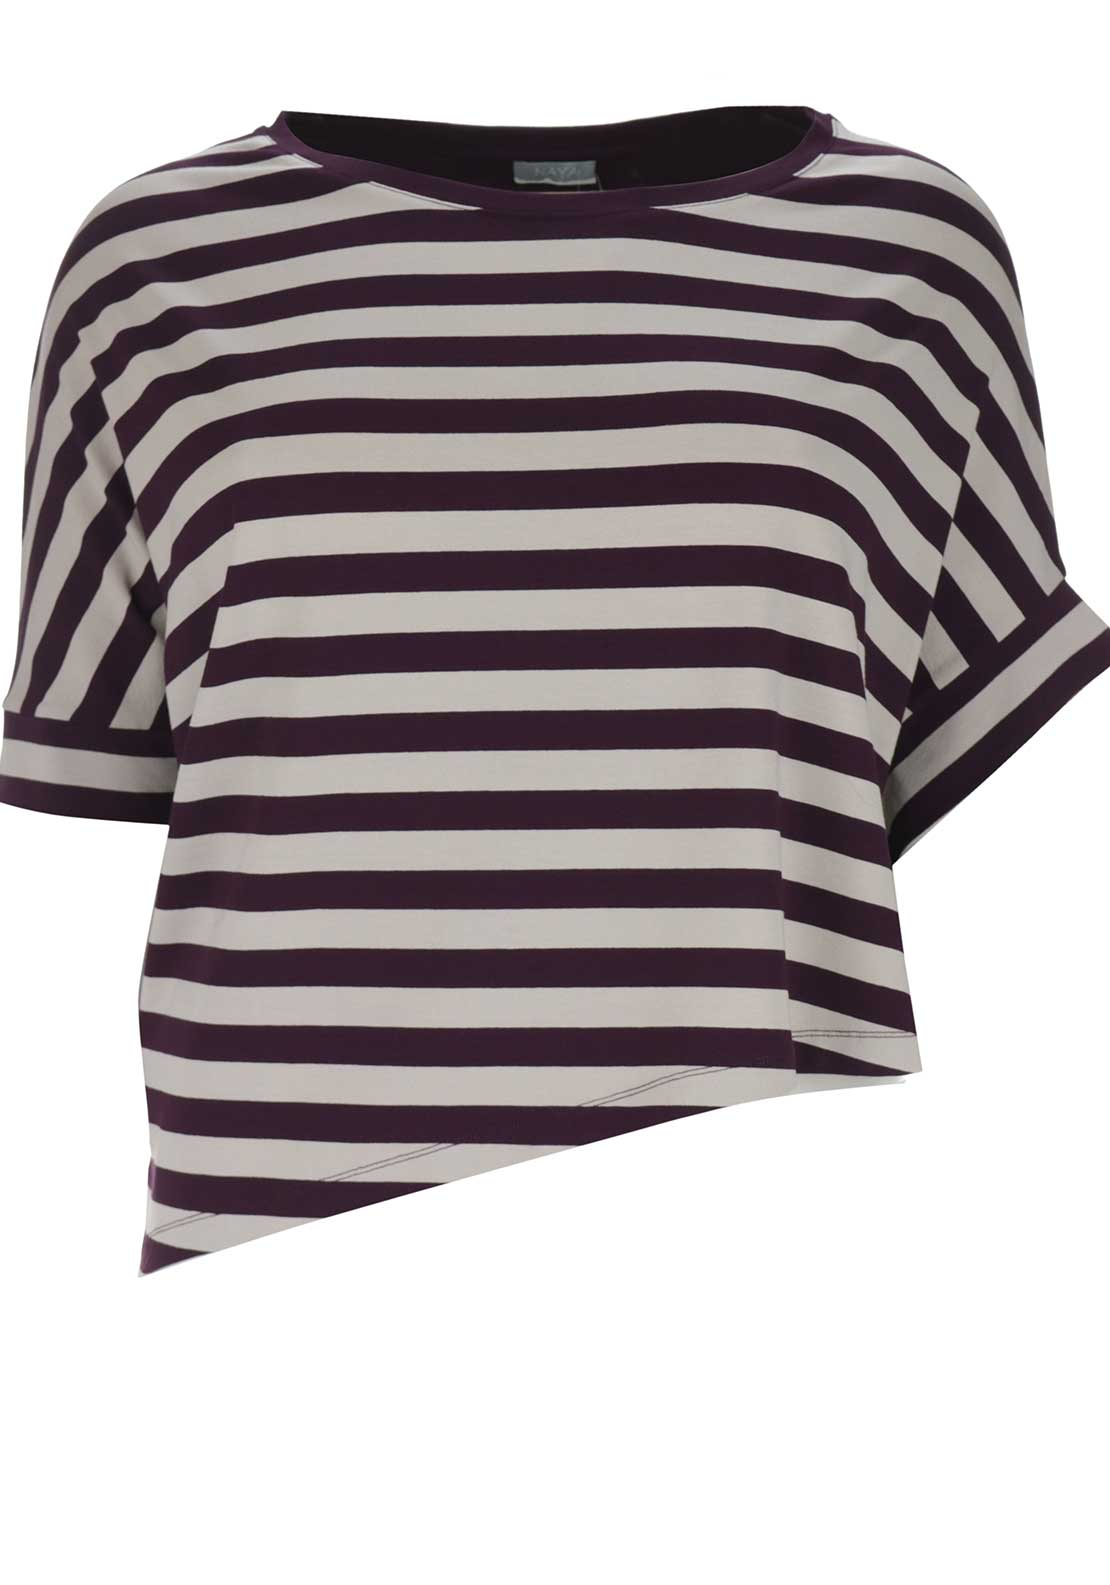 Naya Short Relaxed Fit Top, Purple and Cream